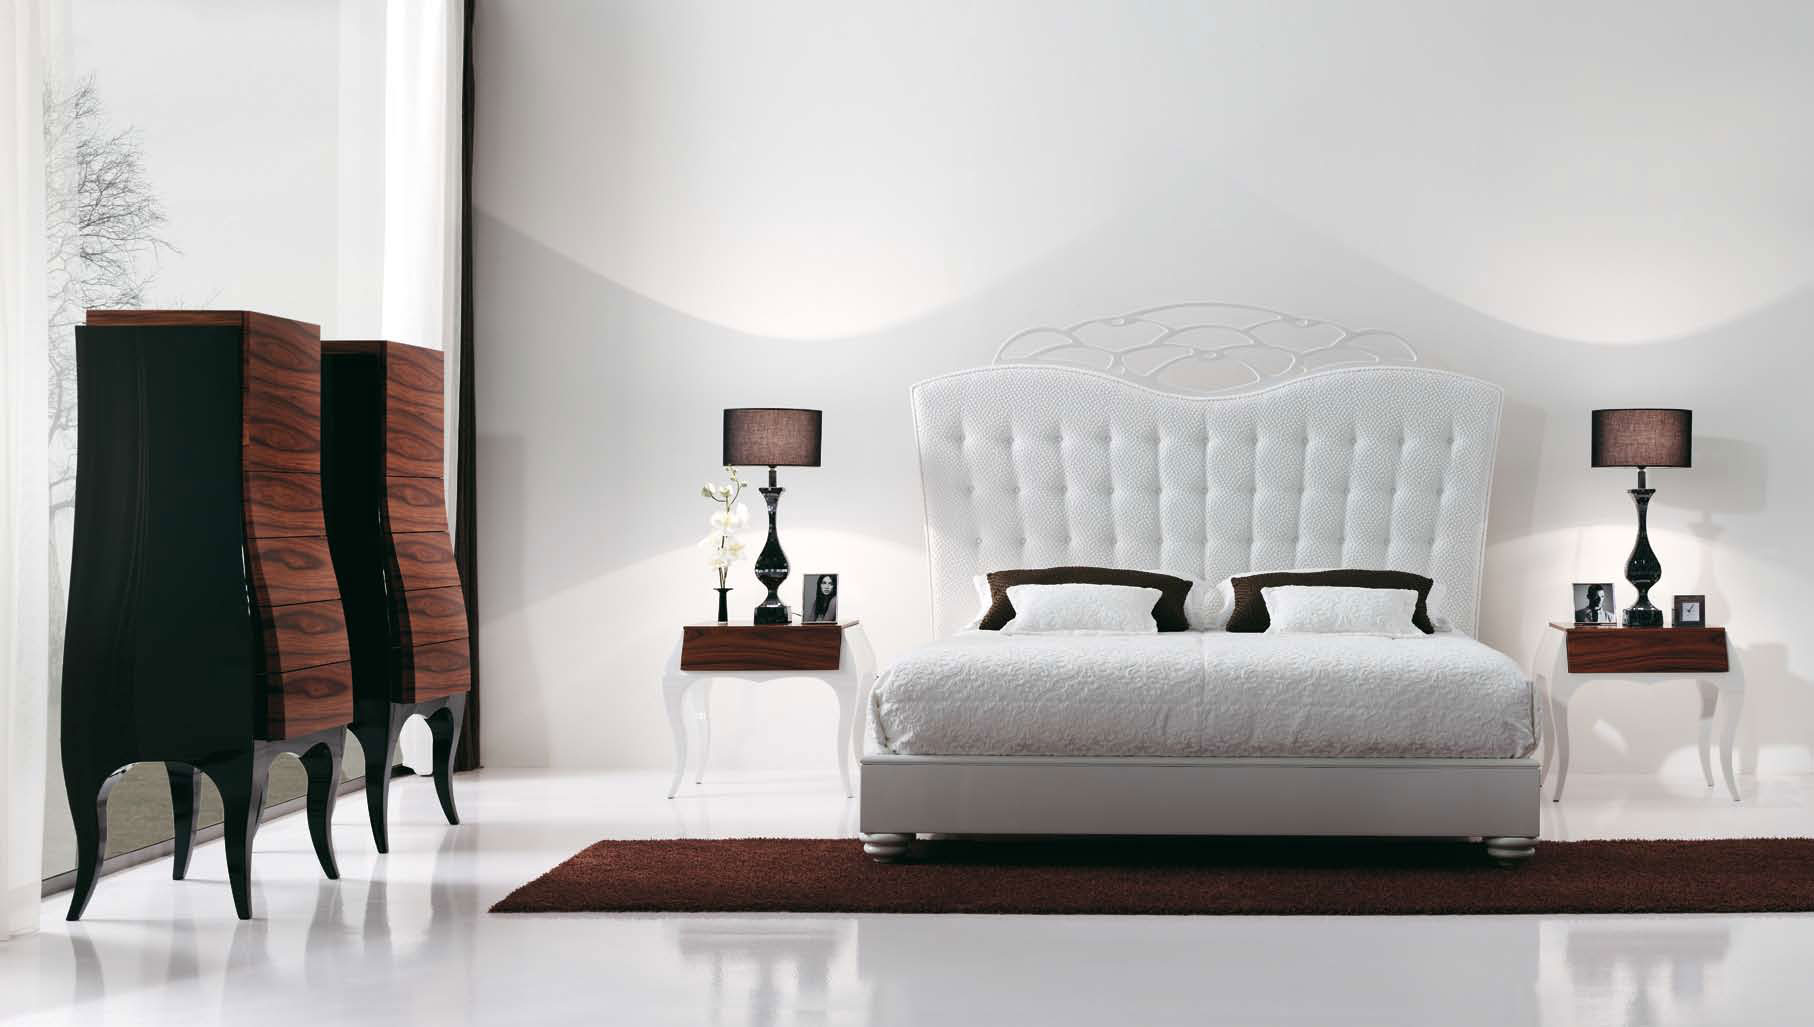 Excellent White Bedroom Furniture Design Ideas 1814 x 1027 · 118 kB · jpeg